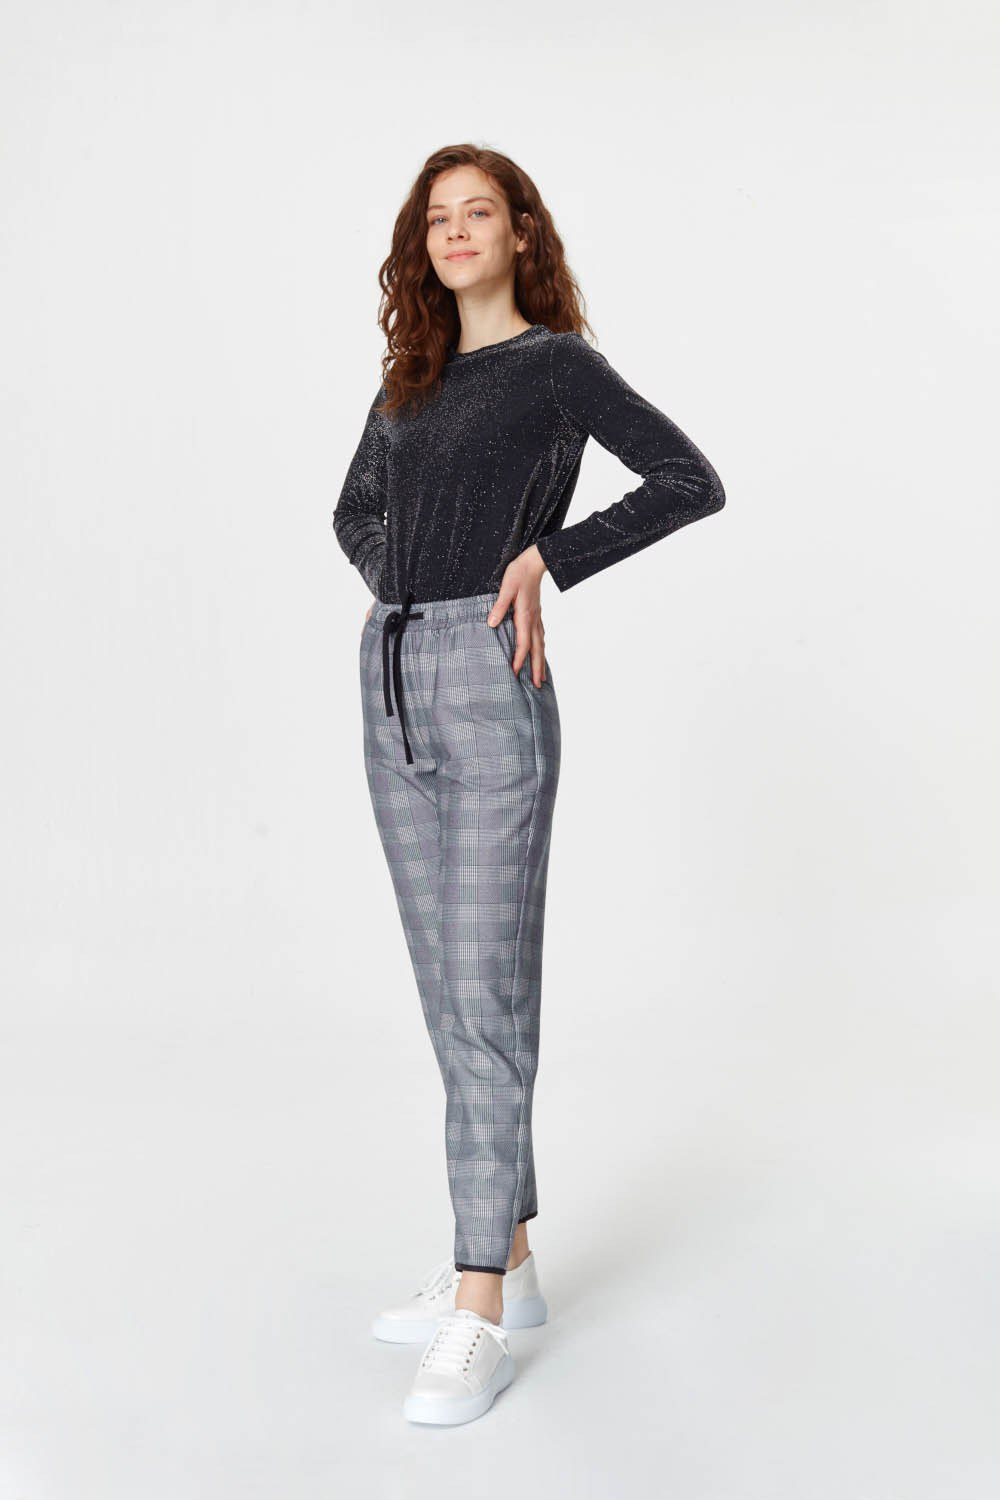 MIZALLE Plaid Trousers Model With Lacing on Waist (Navy Blue) (1)